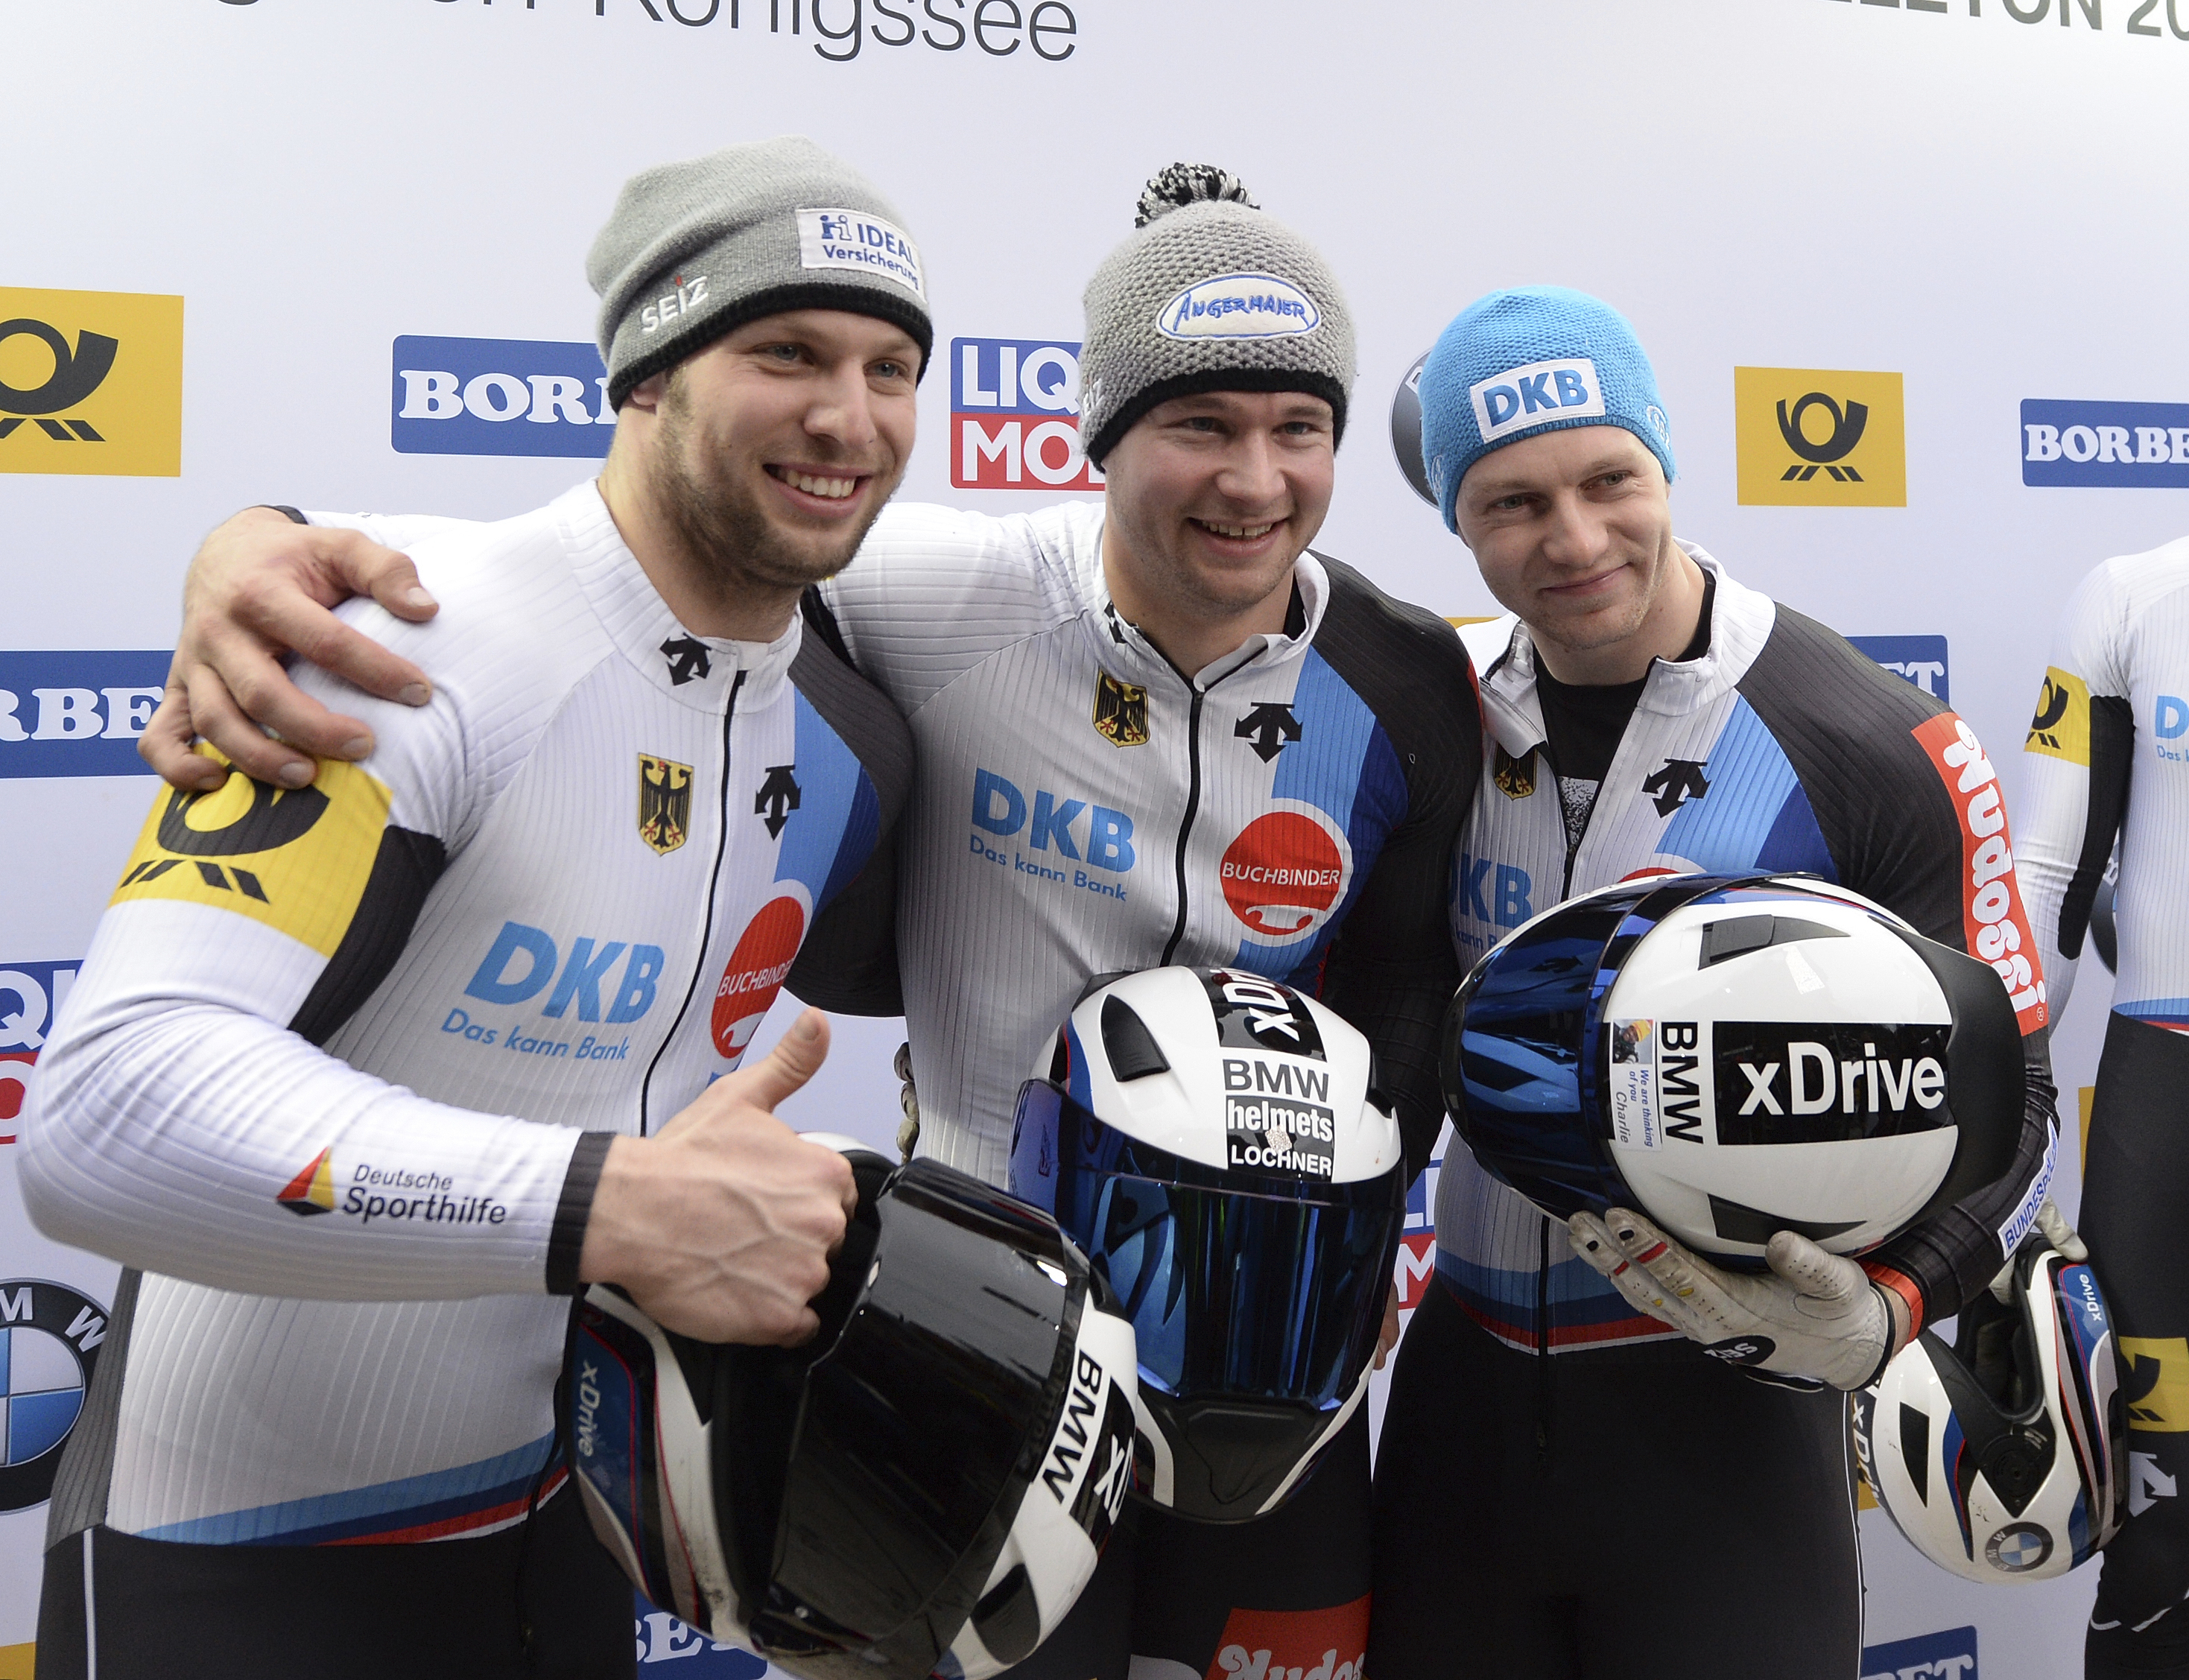 German third placed Nico Walther and the two German winners Johannes Lochner and Francesco Friedrich, from left,  celebrate after the four-men bob race at the bob and skeleton World Championships in Schoenau am Koenigssee, Germany, Sunday, Feb. 26, 2017.